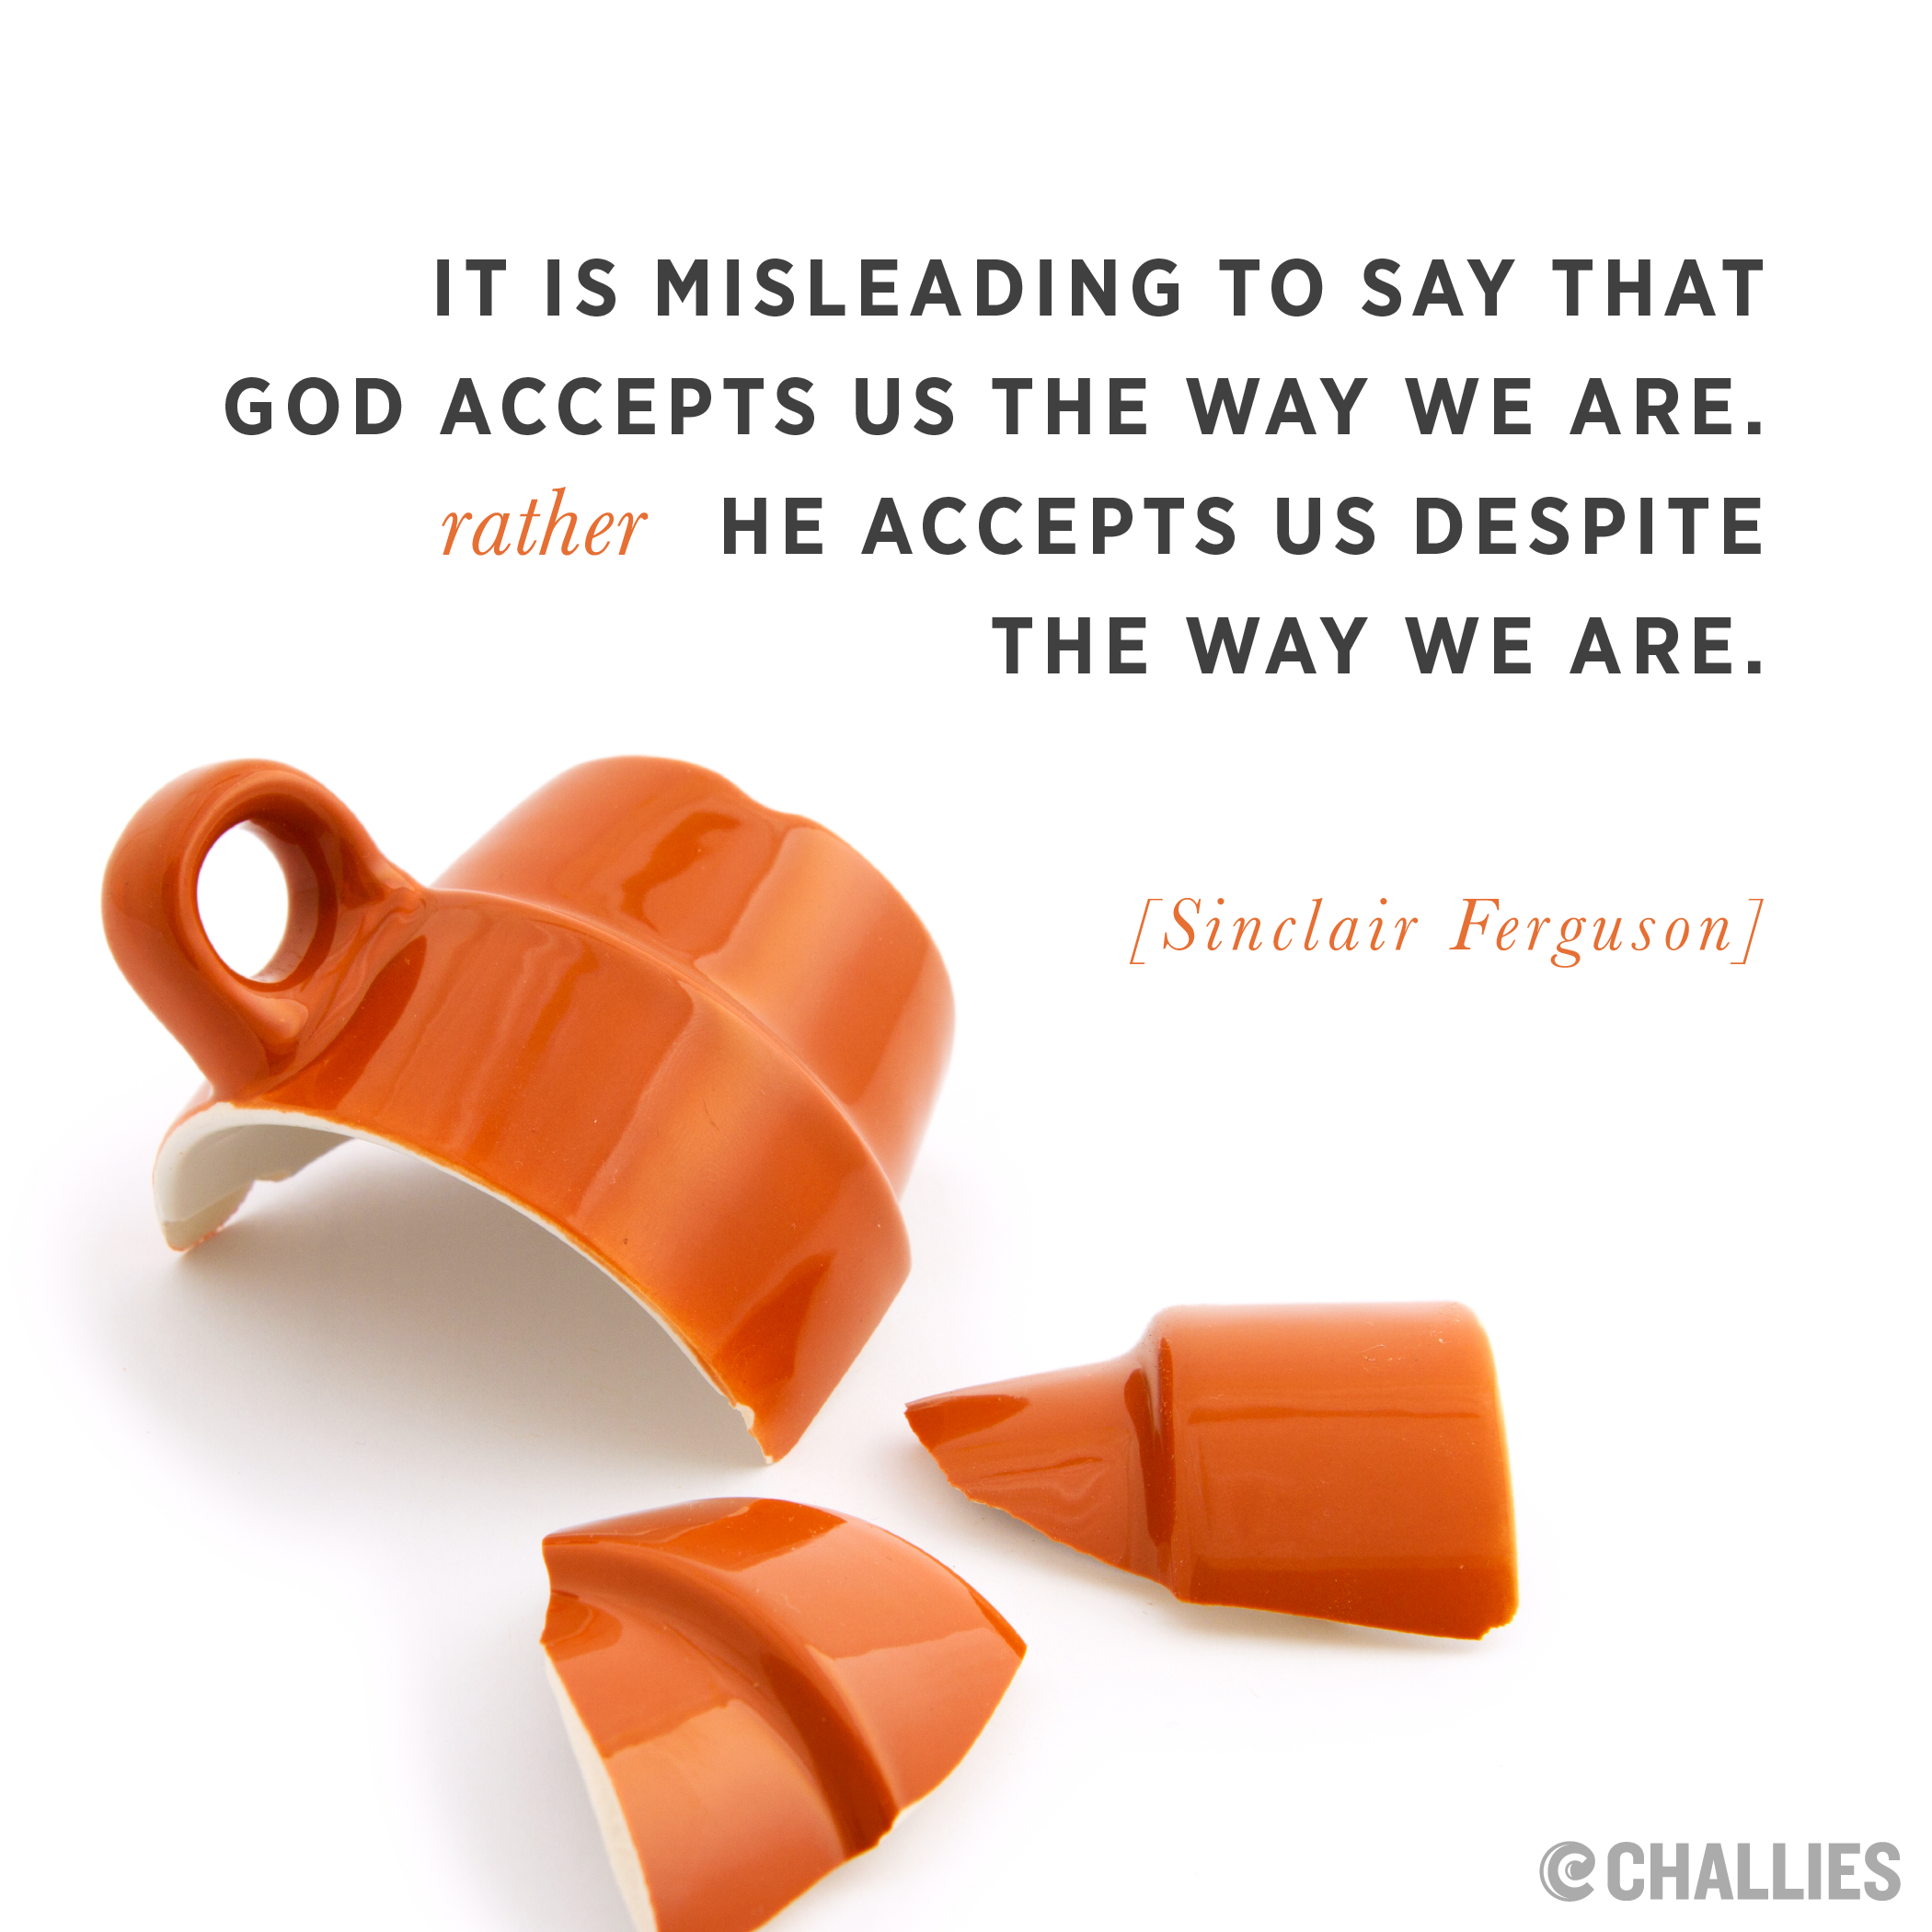 it is misleading to say that god accepts us the way we are rather